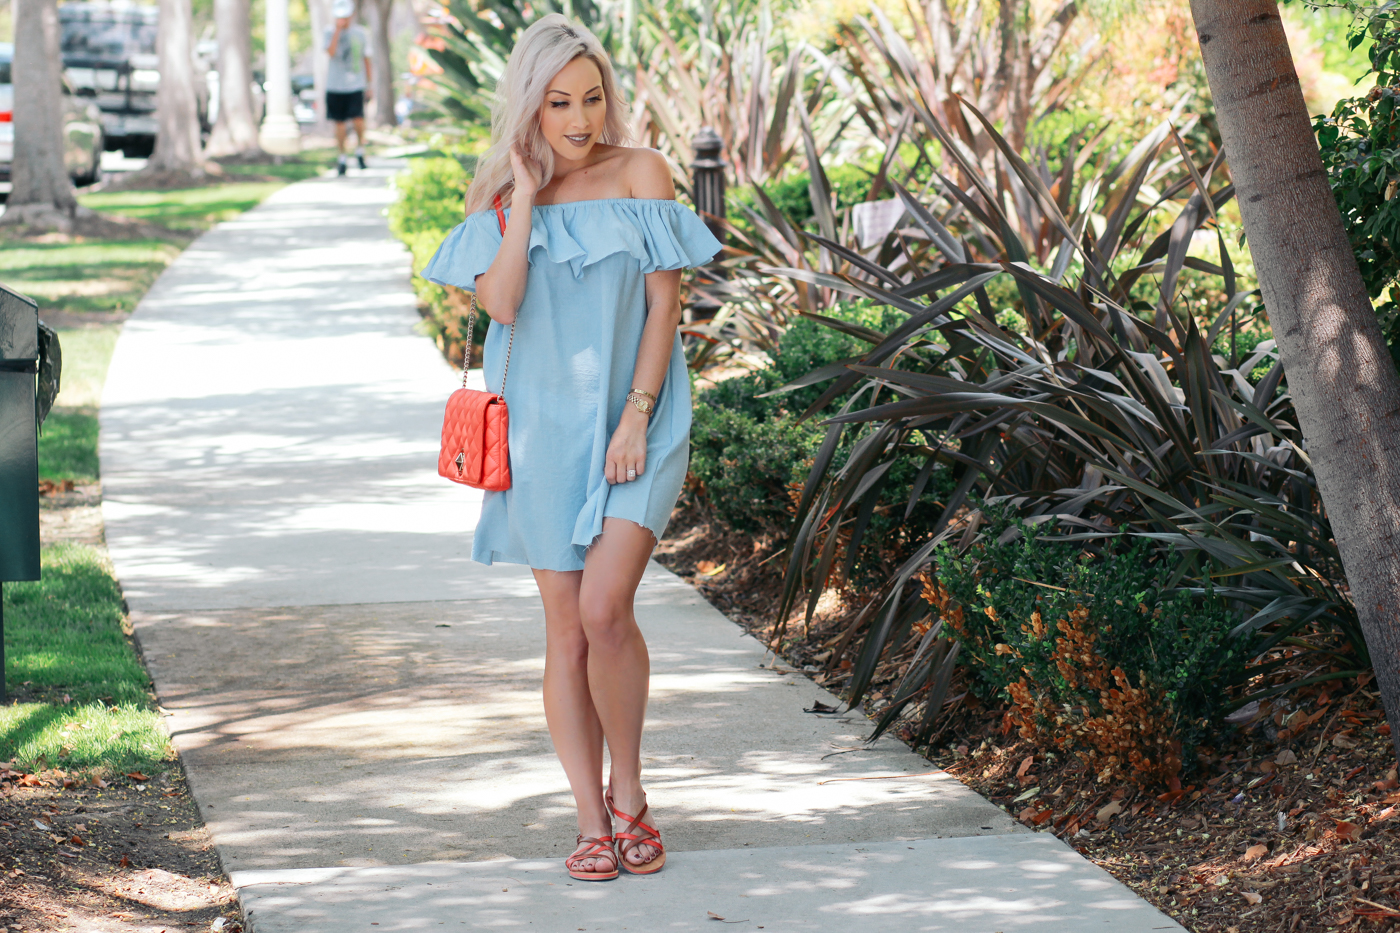 Blondie in the City | Light Blue Ruffle Summer Dress | Coral Kate Spade Bag | @corkysfootwear sandals